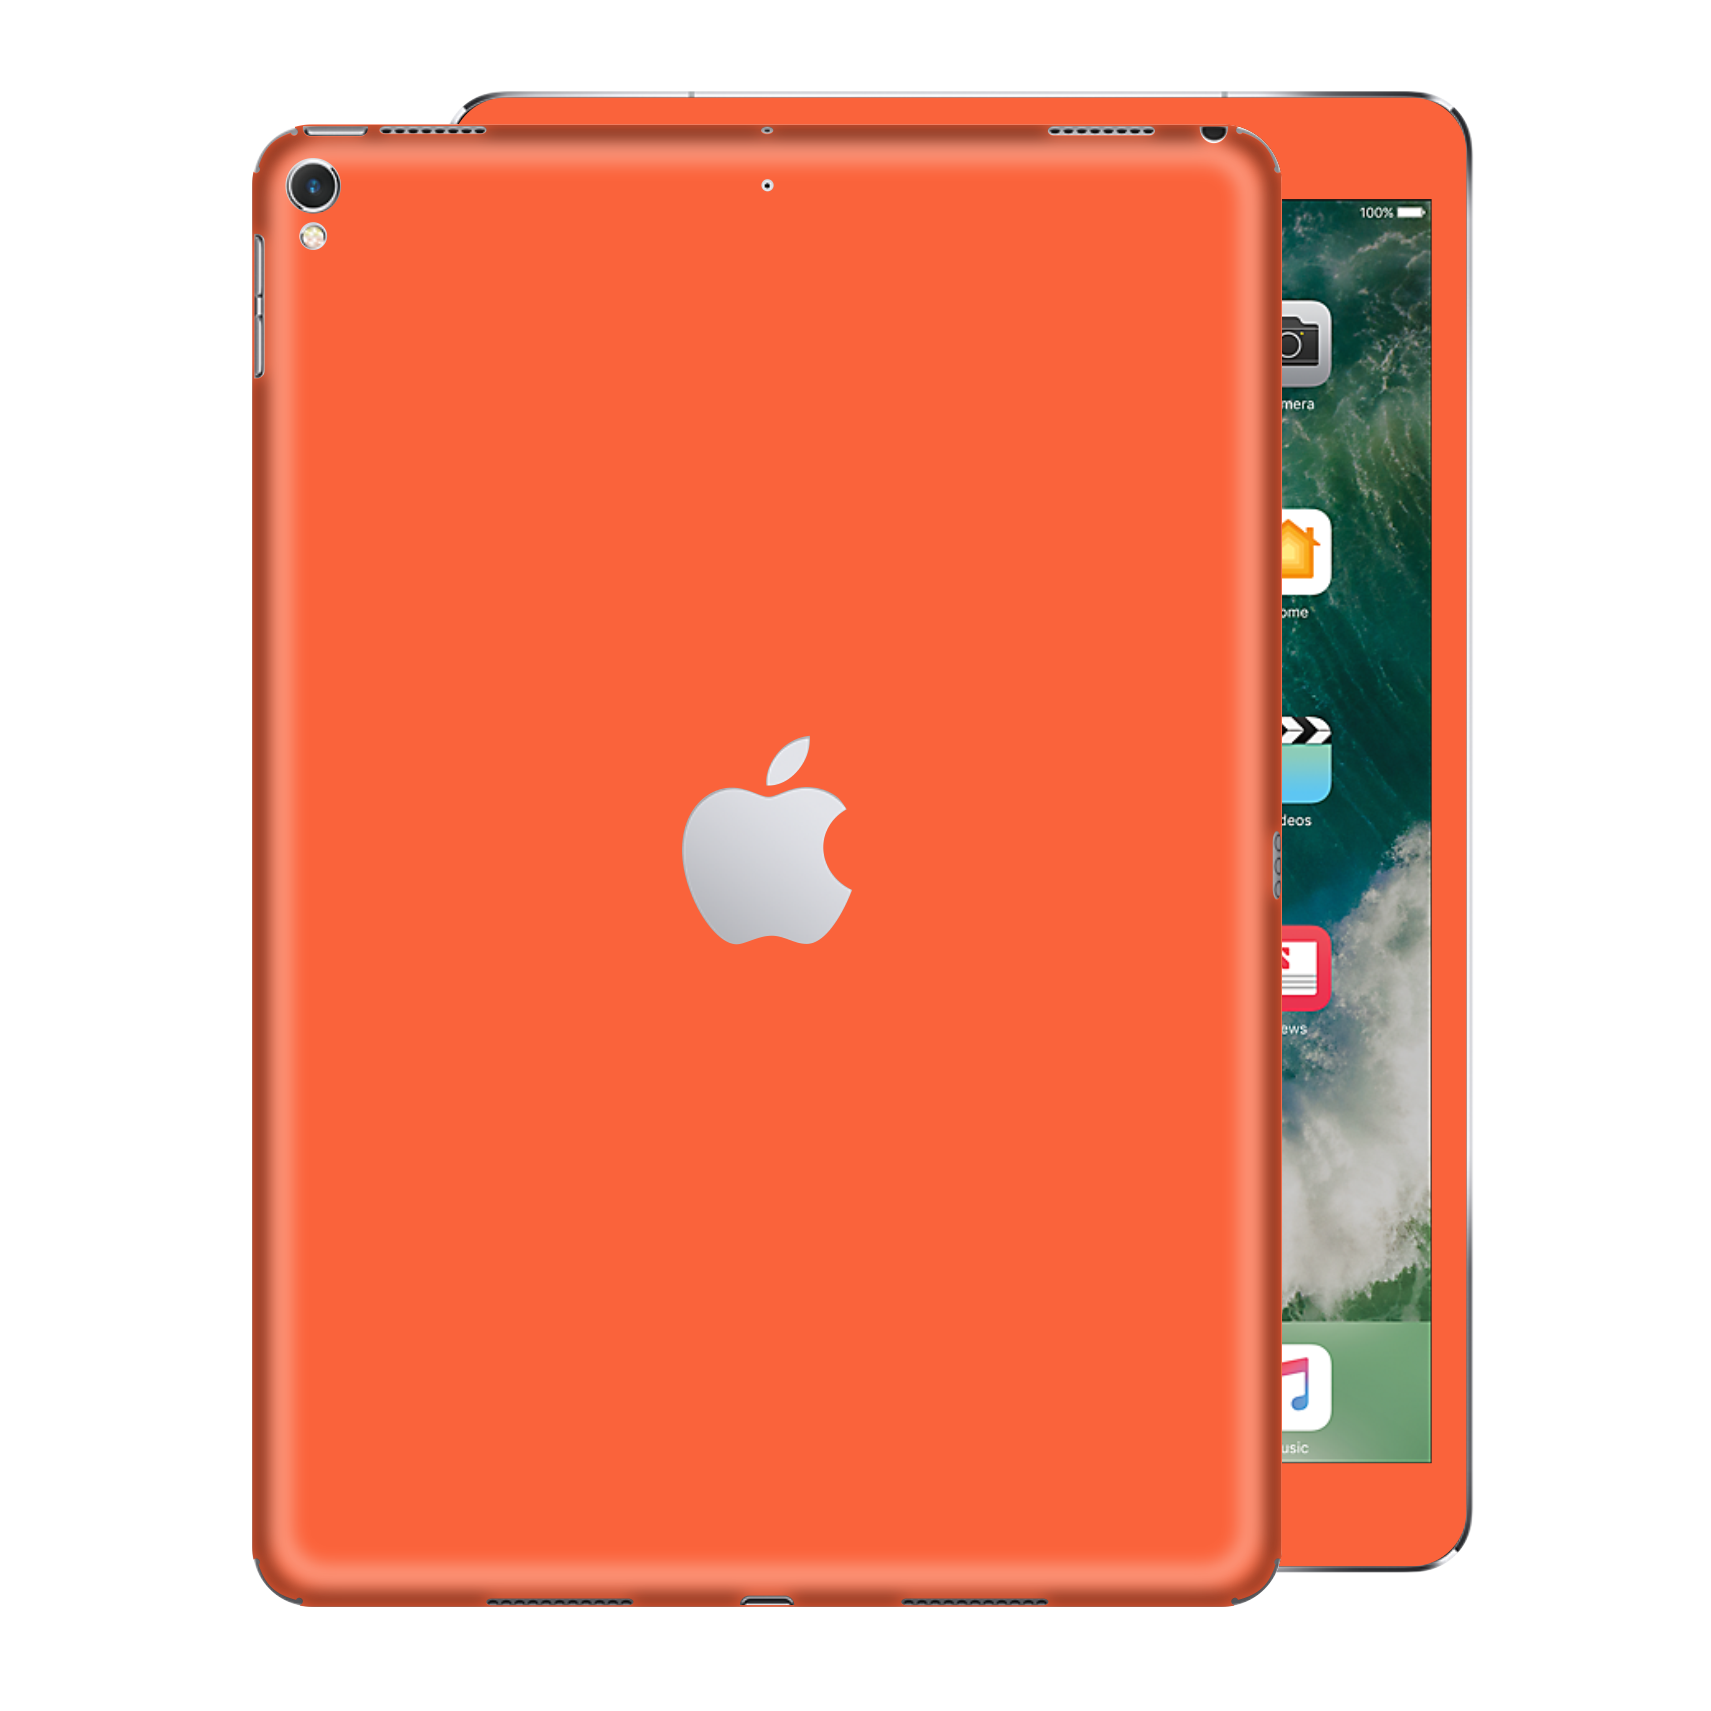 iPad PRO 10.5 inch 2017 Gloss Glossy CORAL Skin Wrap Sticker Decal Cover Protector by EasySkinz